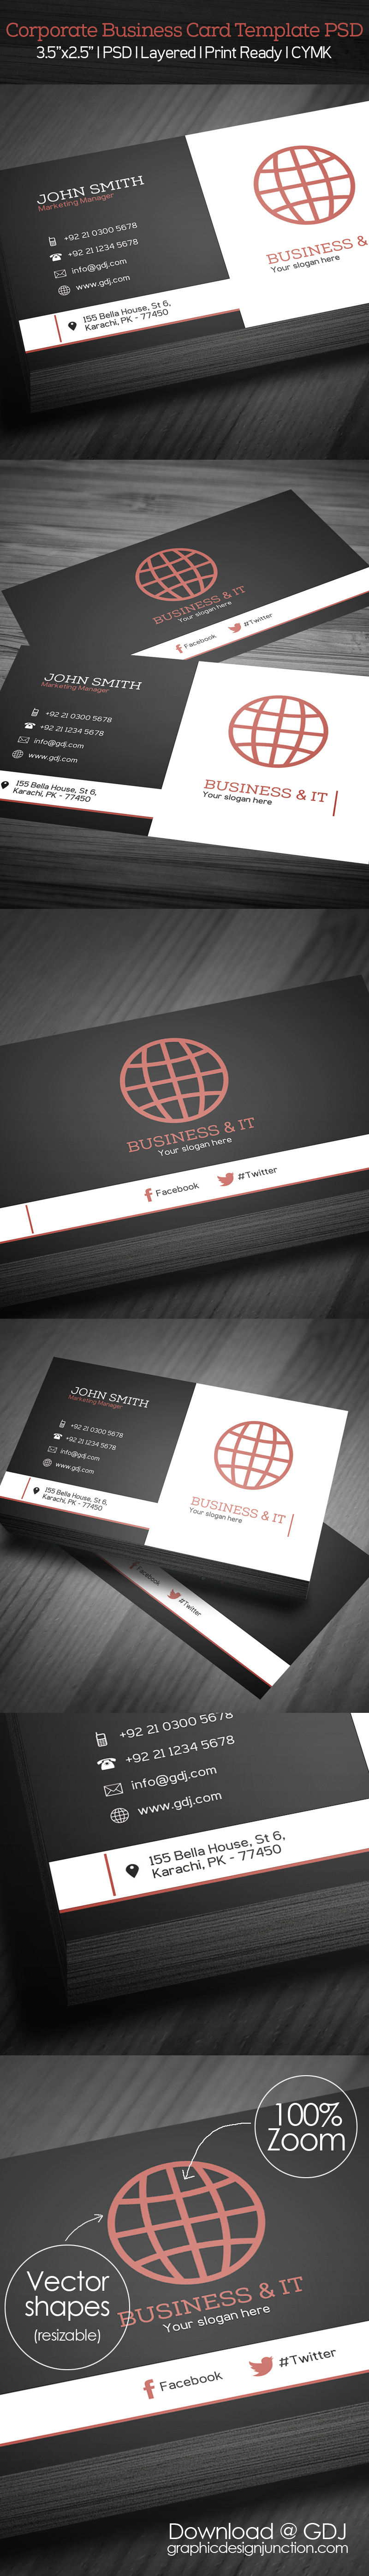 free corporate business card template psd freebies